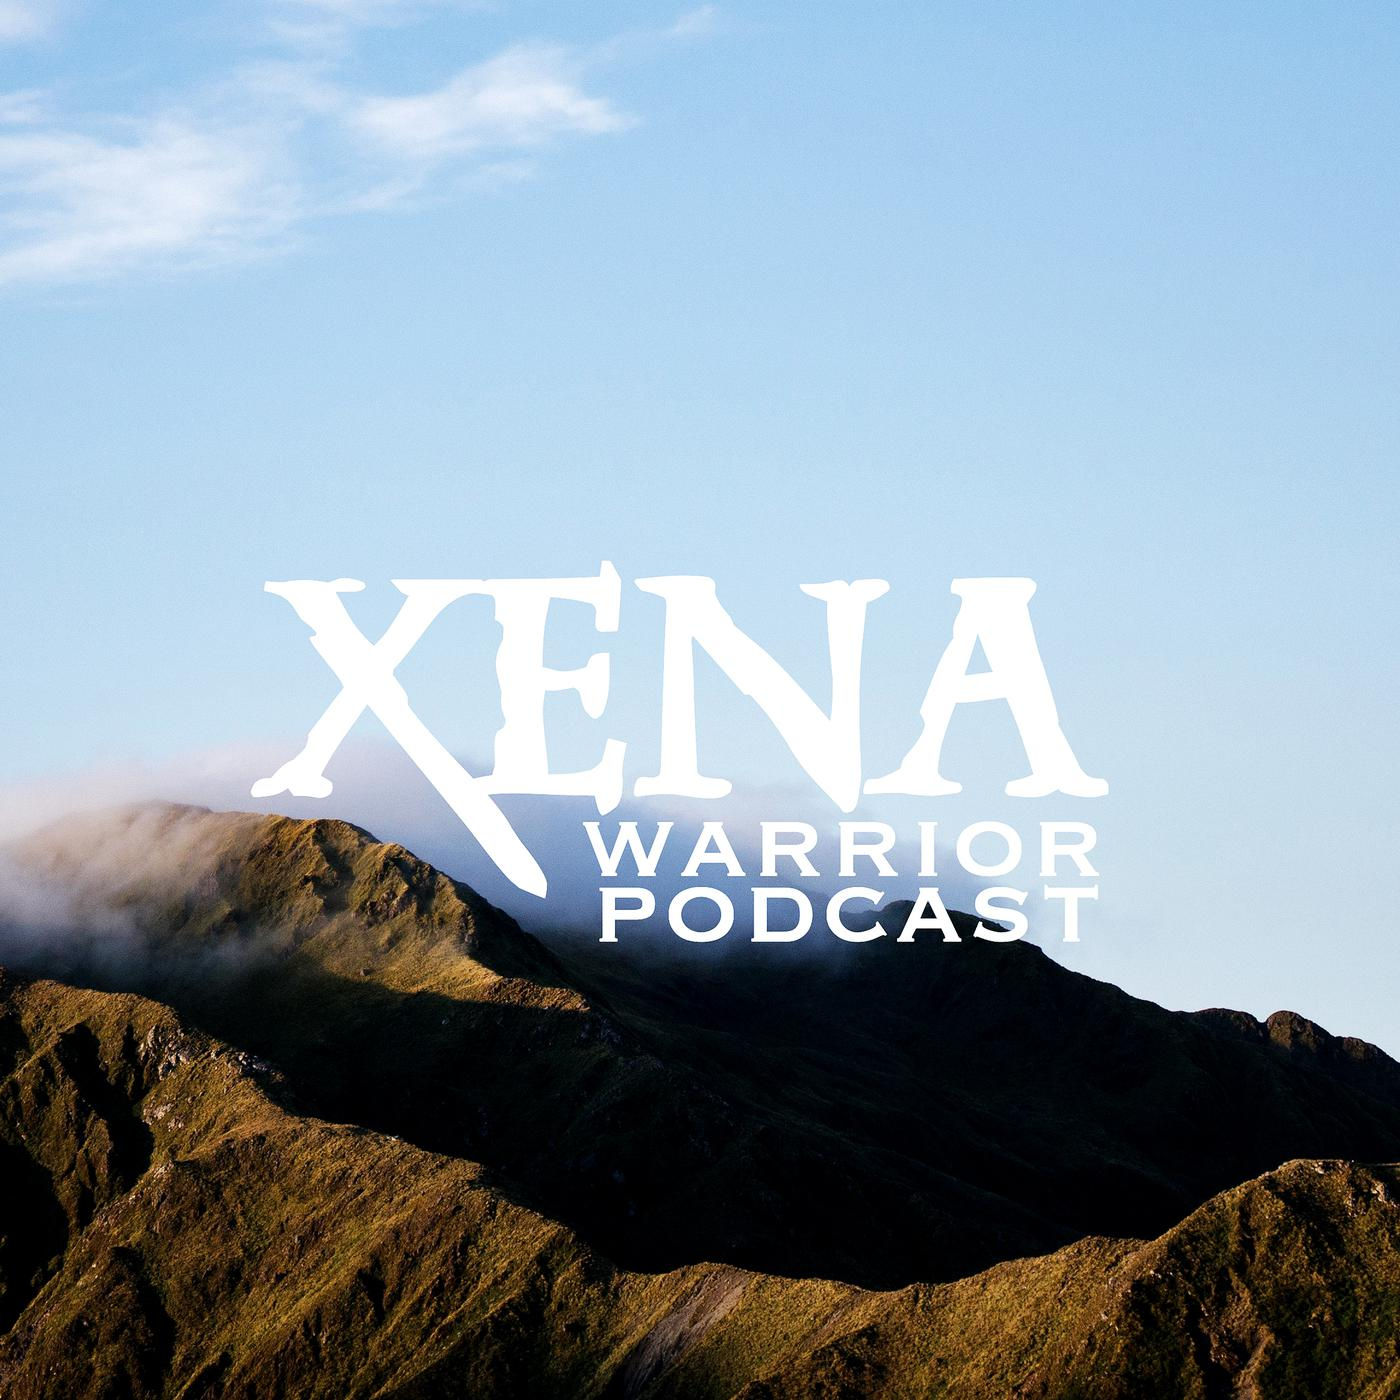 Xena: Warrior Podcast - Xena: Warrior Podcast | Listen Notes